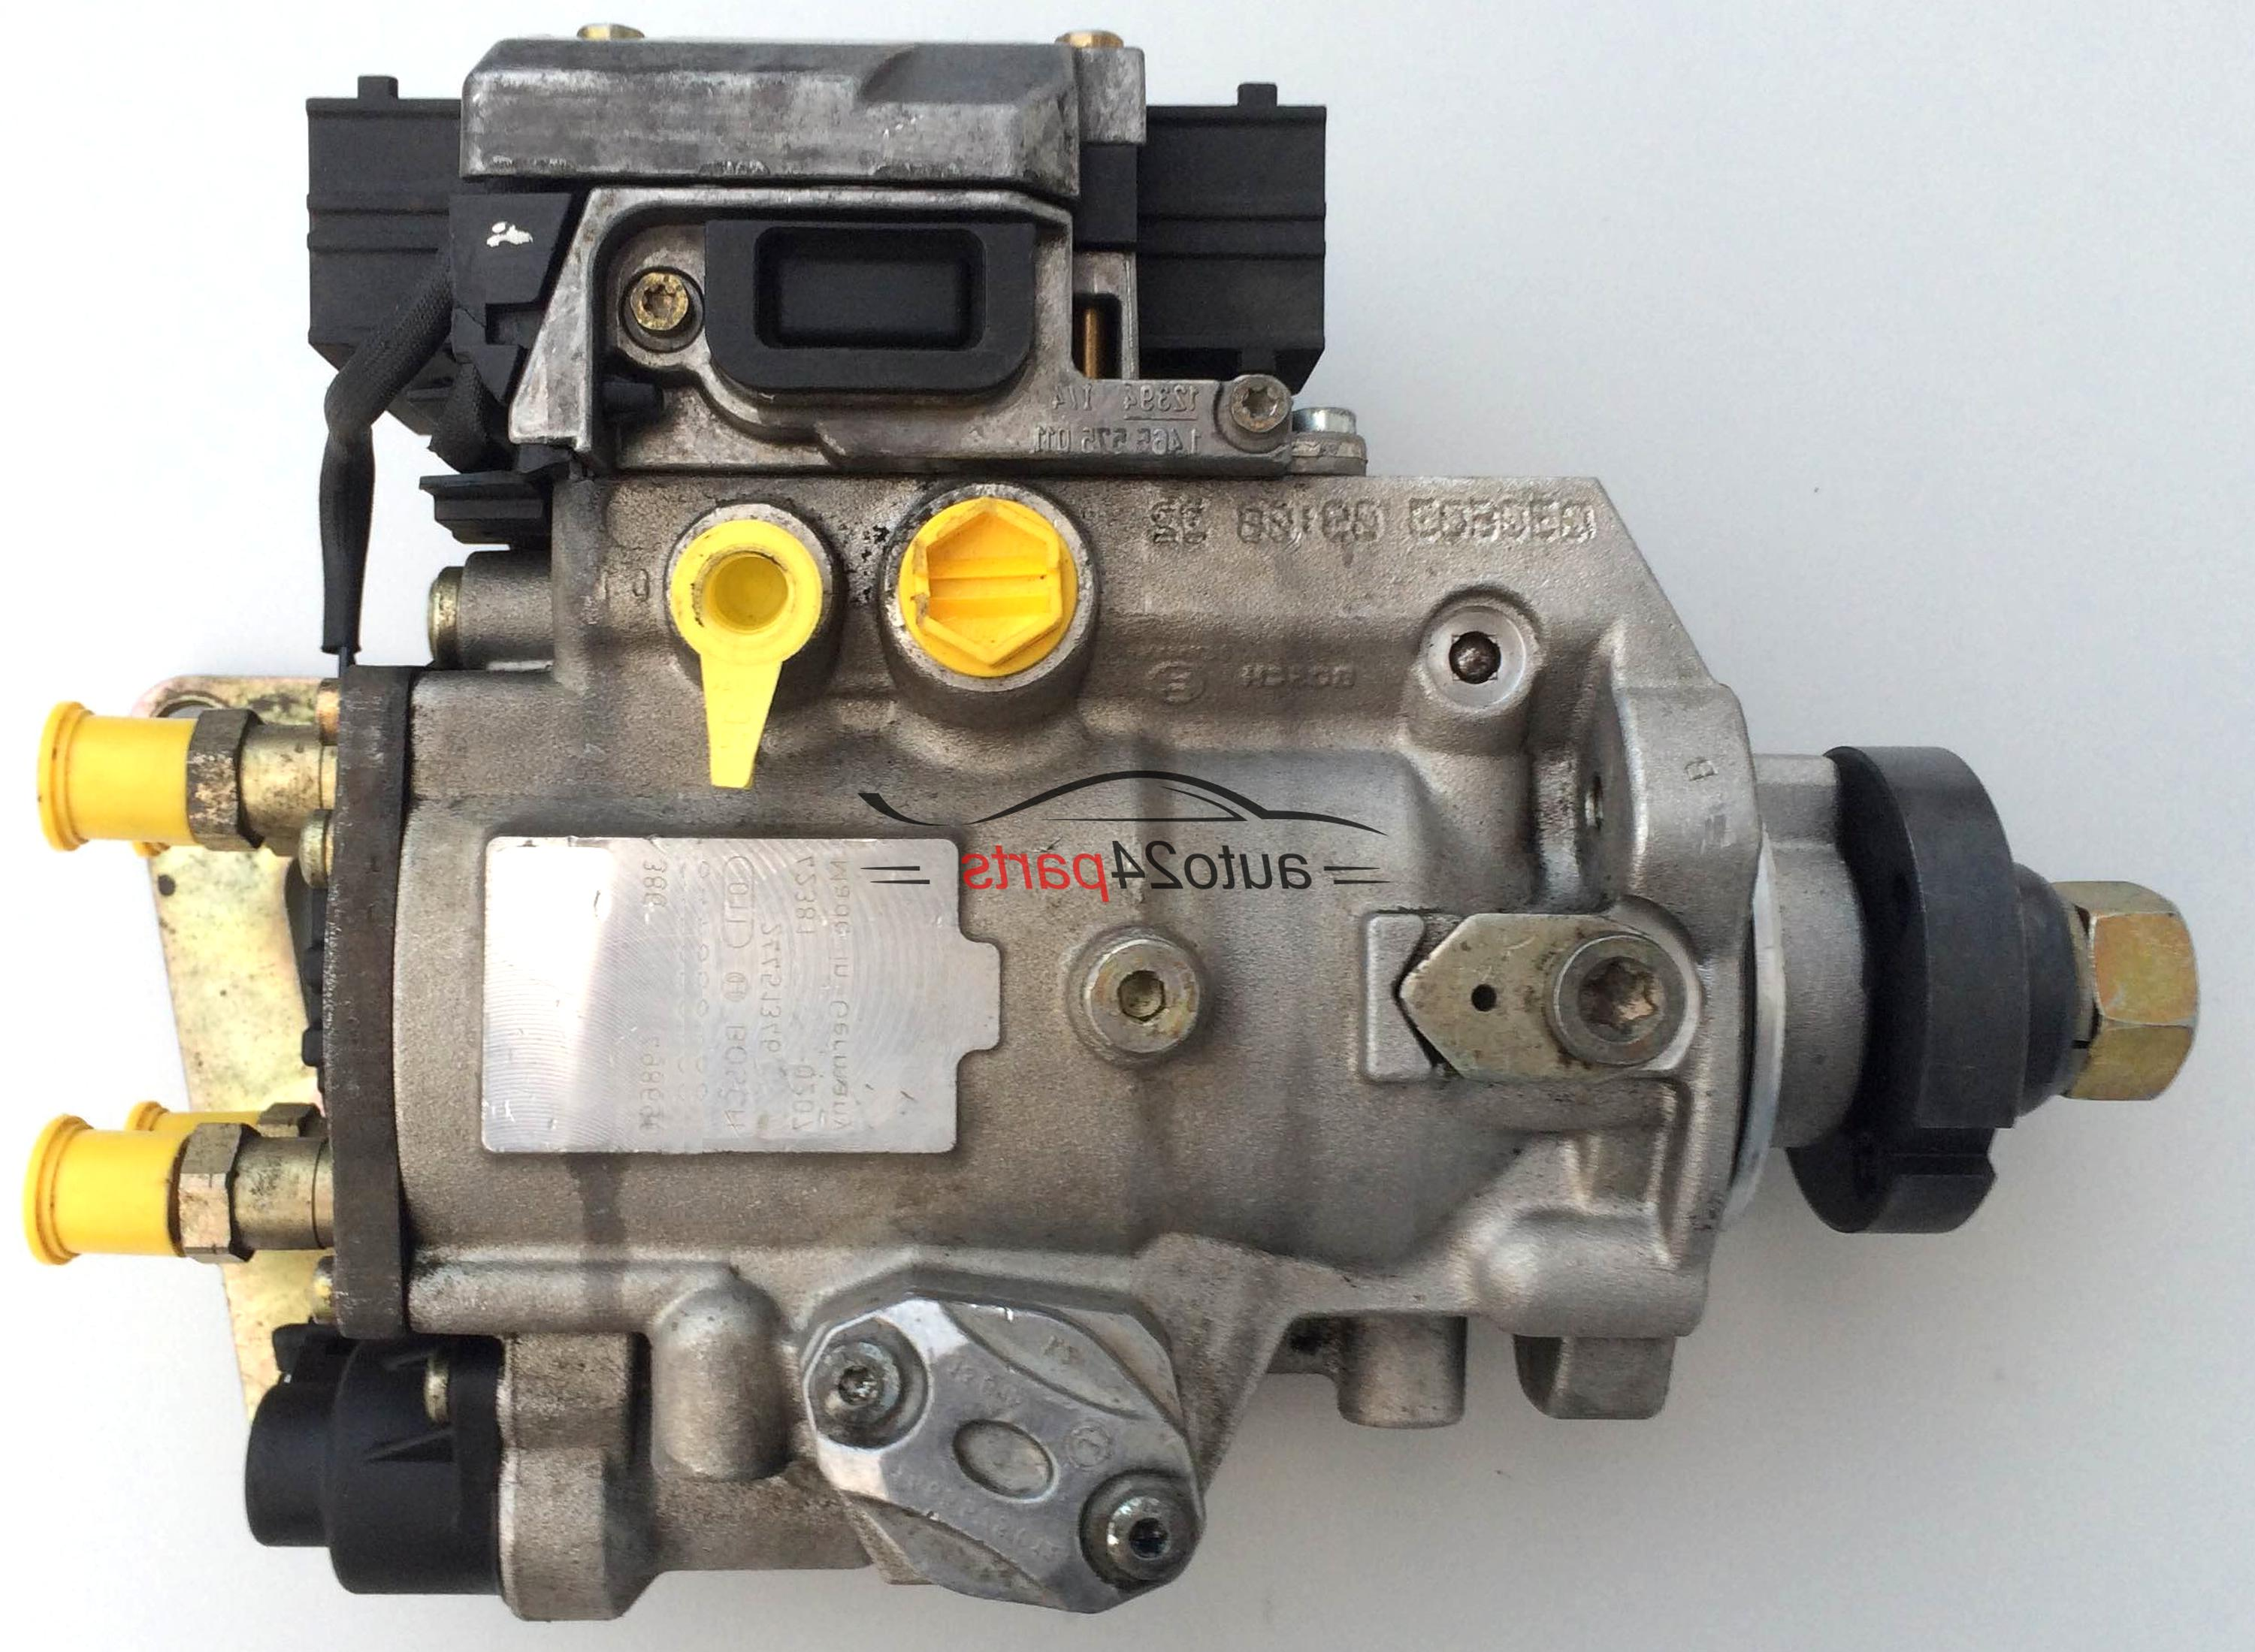 pompe injection opel vectra d'occasion